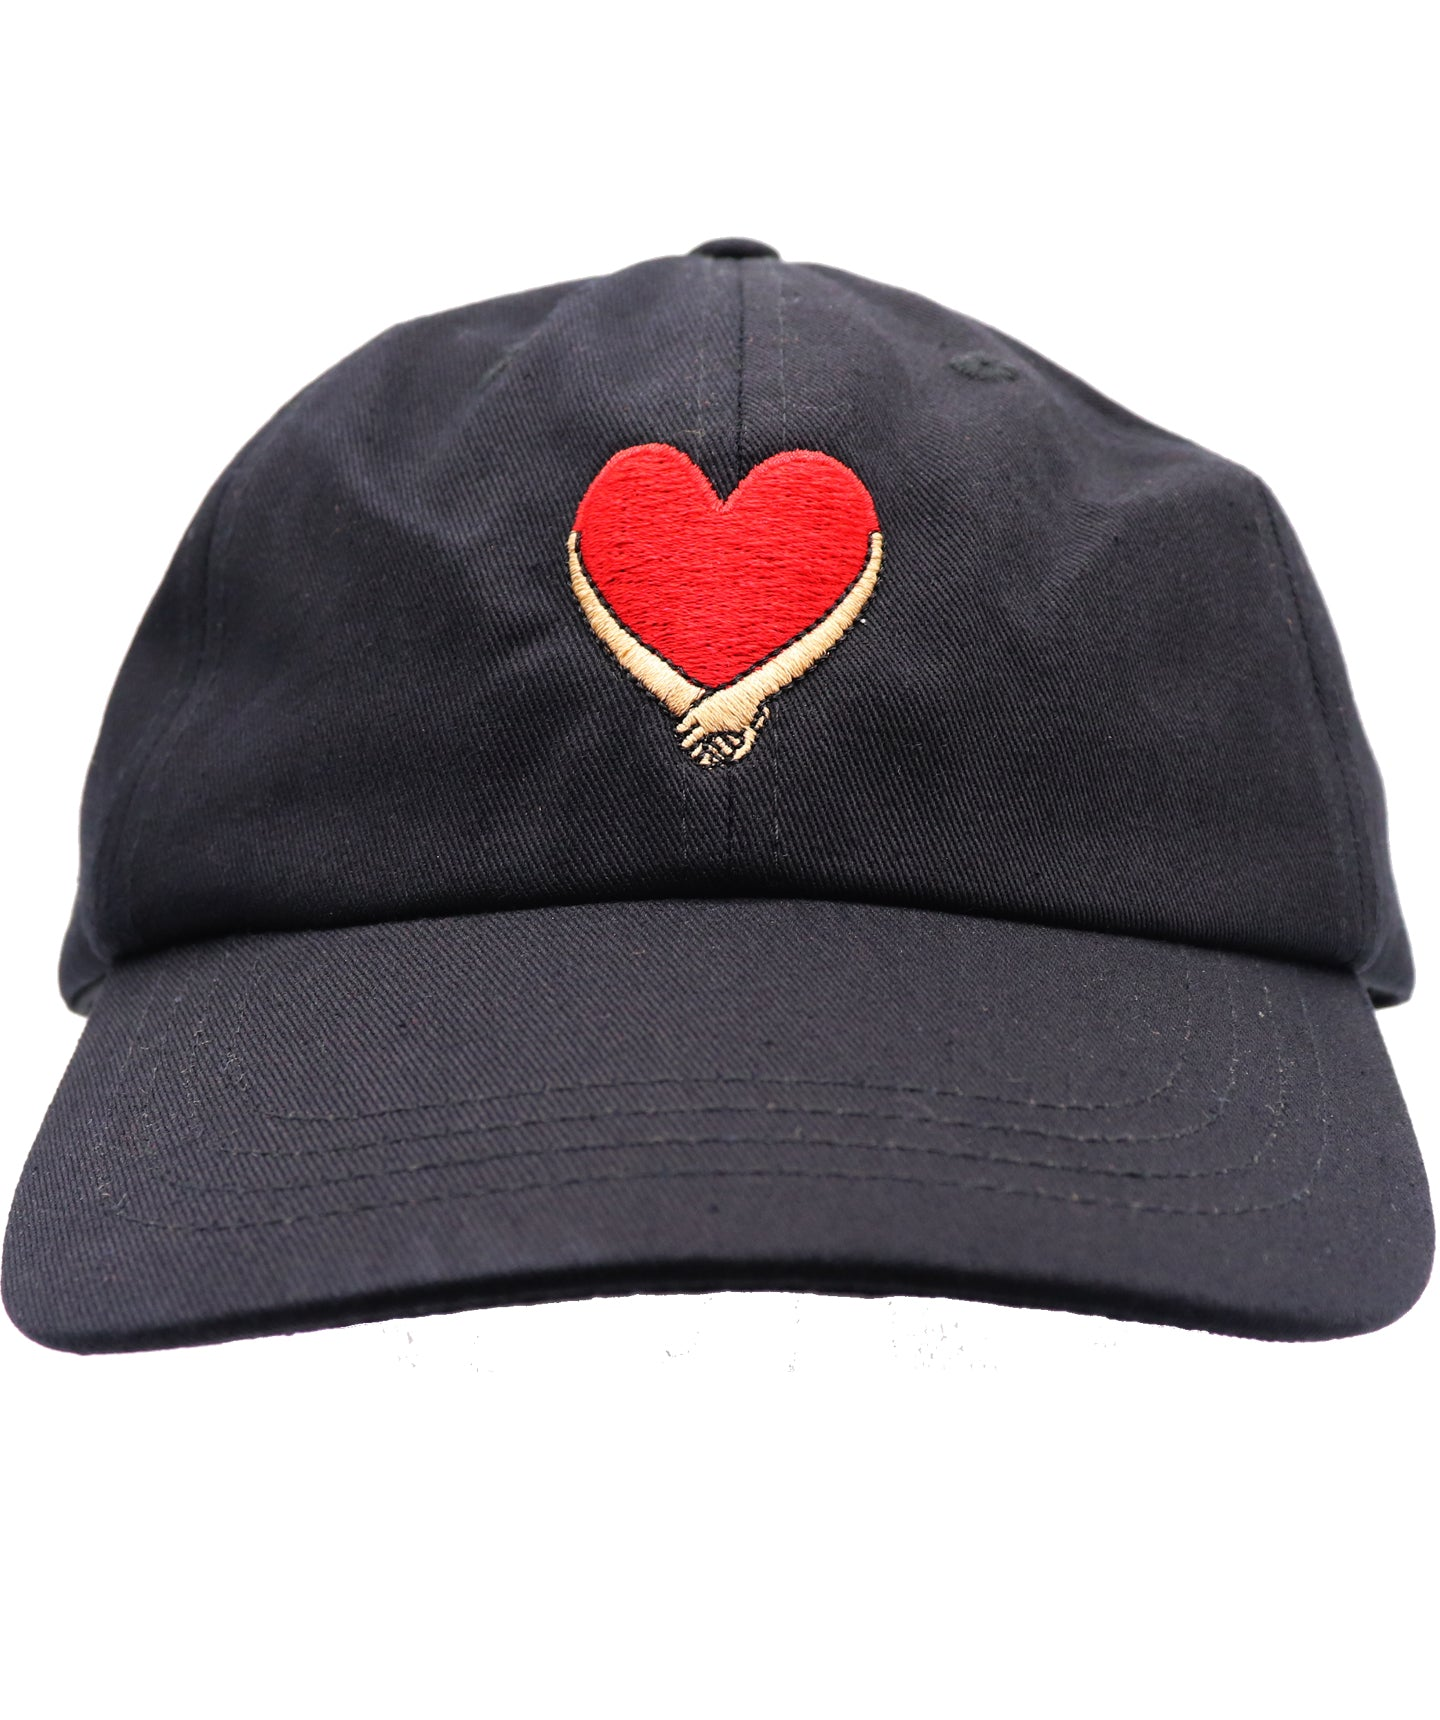 Solid black hat with red heart and tan beige holding hand embroidered baseball dad hat. Embracing hands show love, peace, and solidarity. All lives matter.